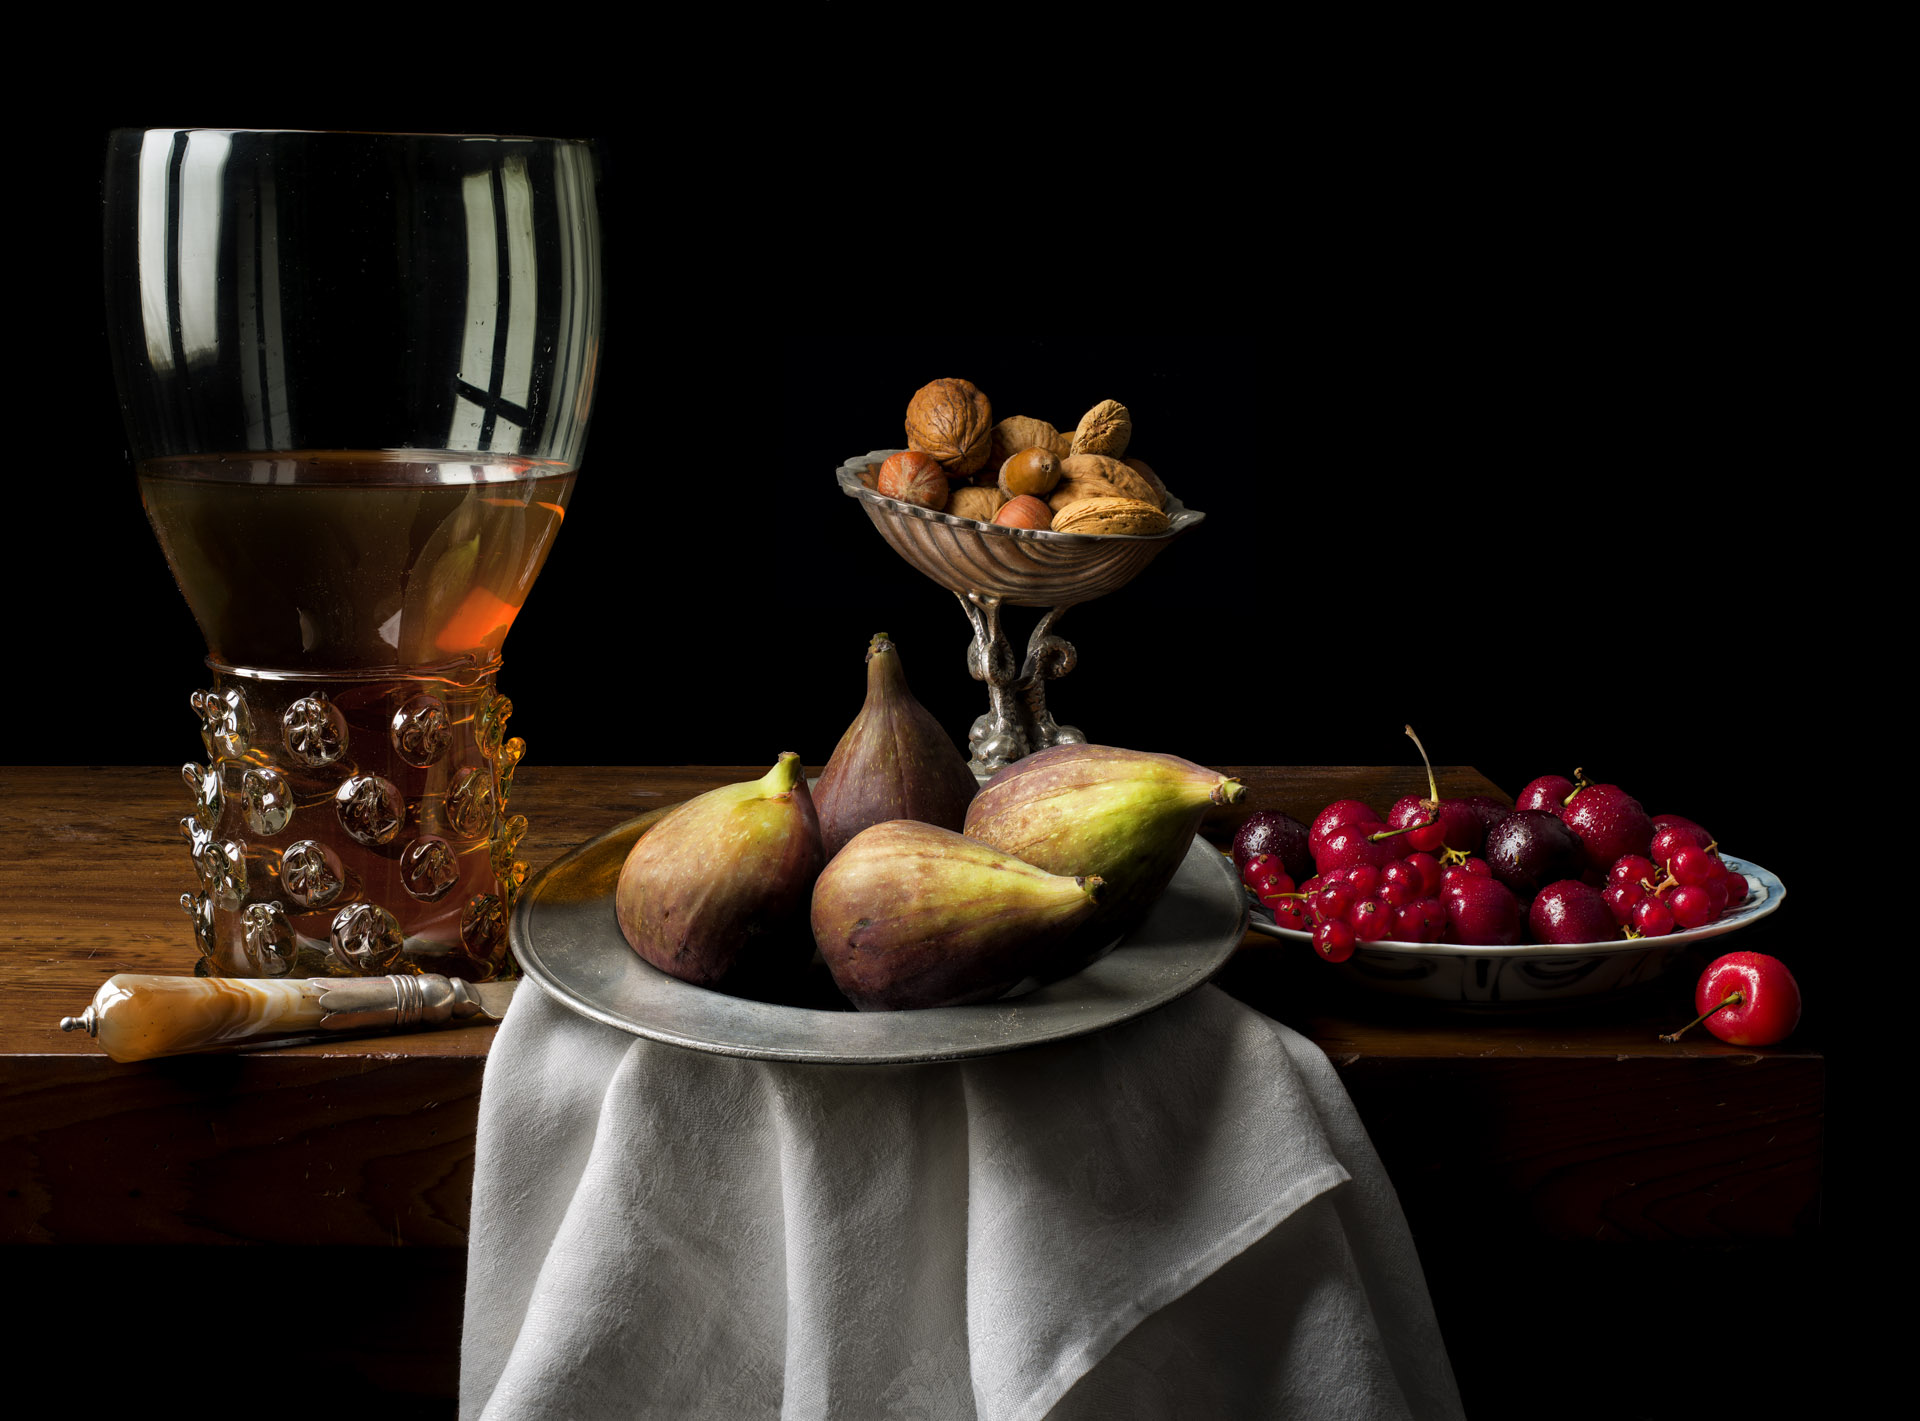 Still life with figs and cherries